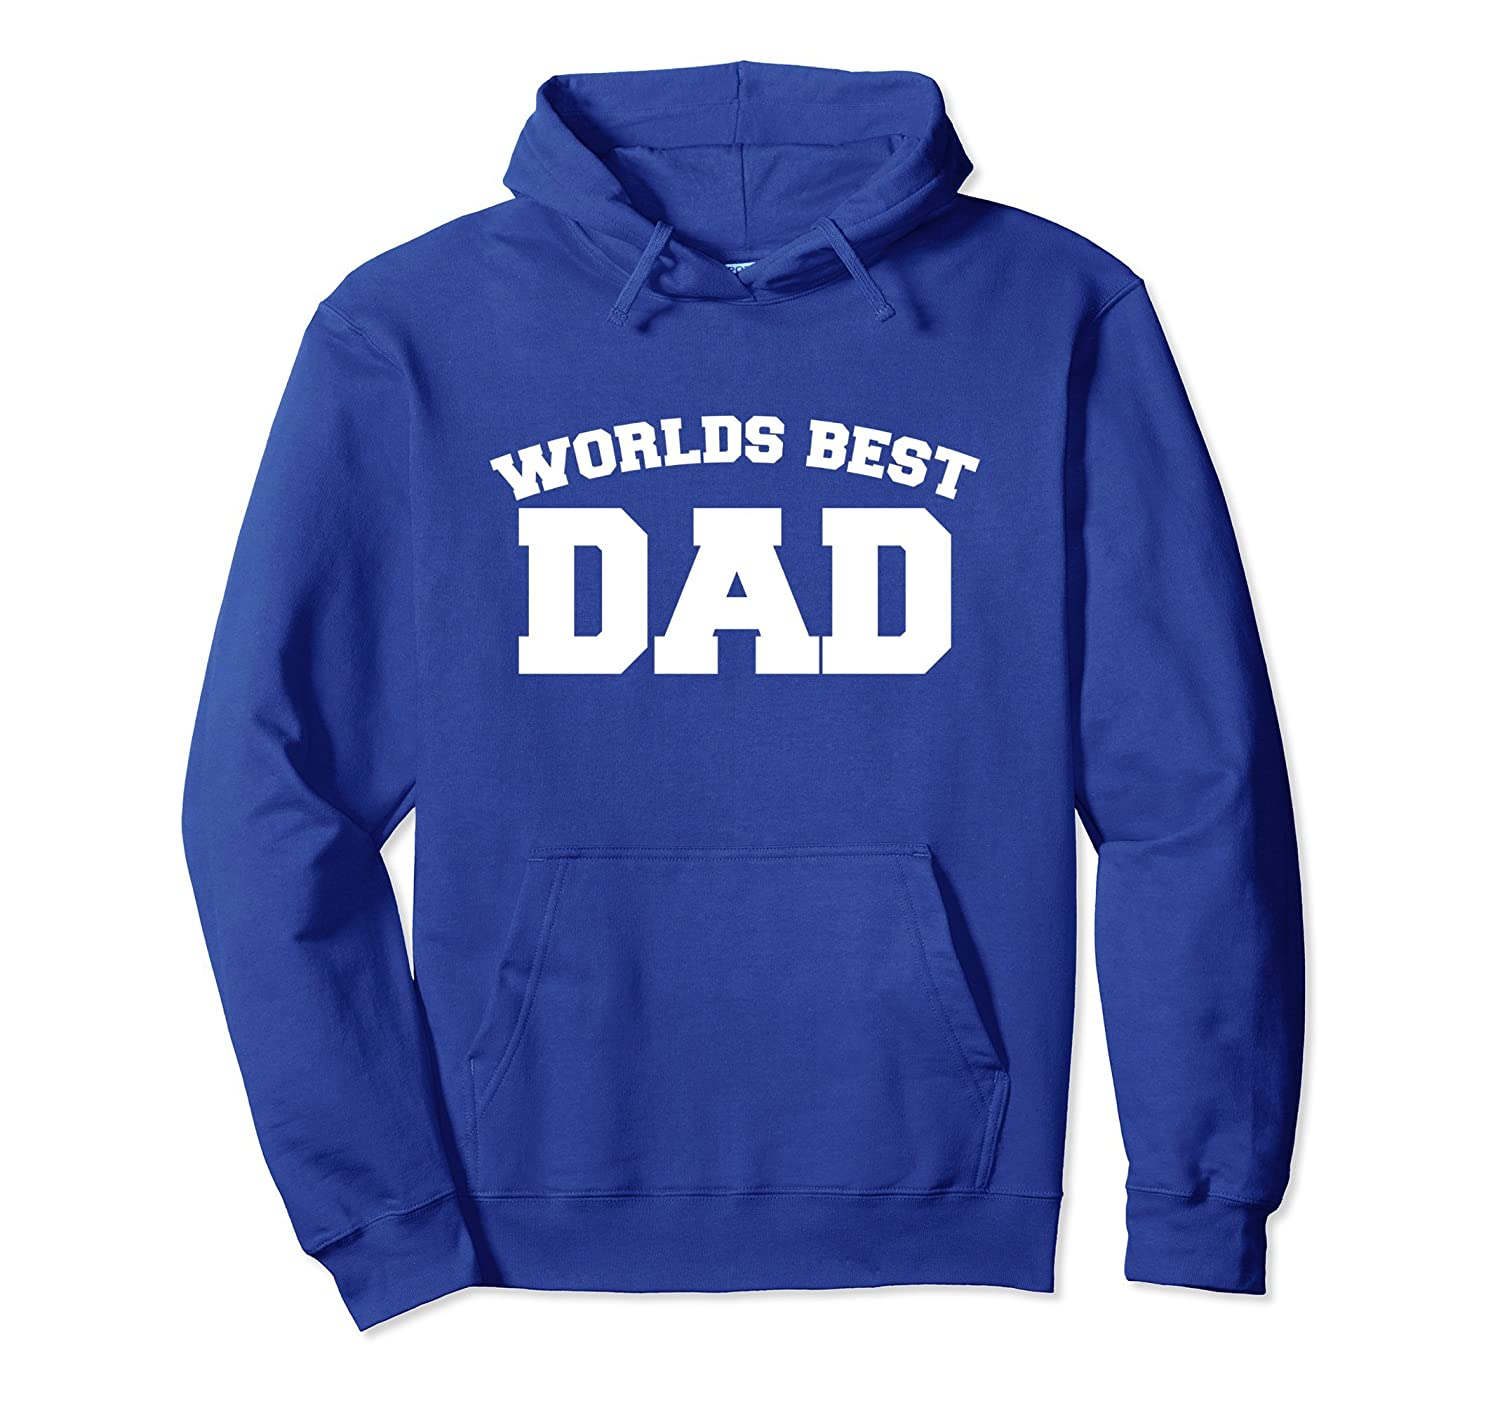 World's best Dad pullover hoodie sporty Dads hoodies father'-TH